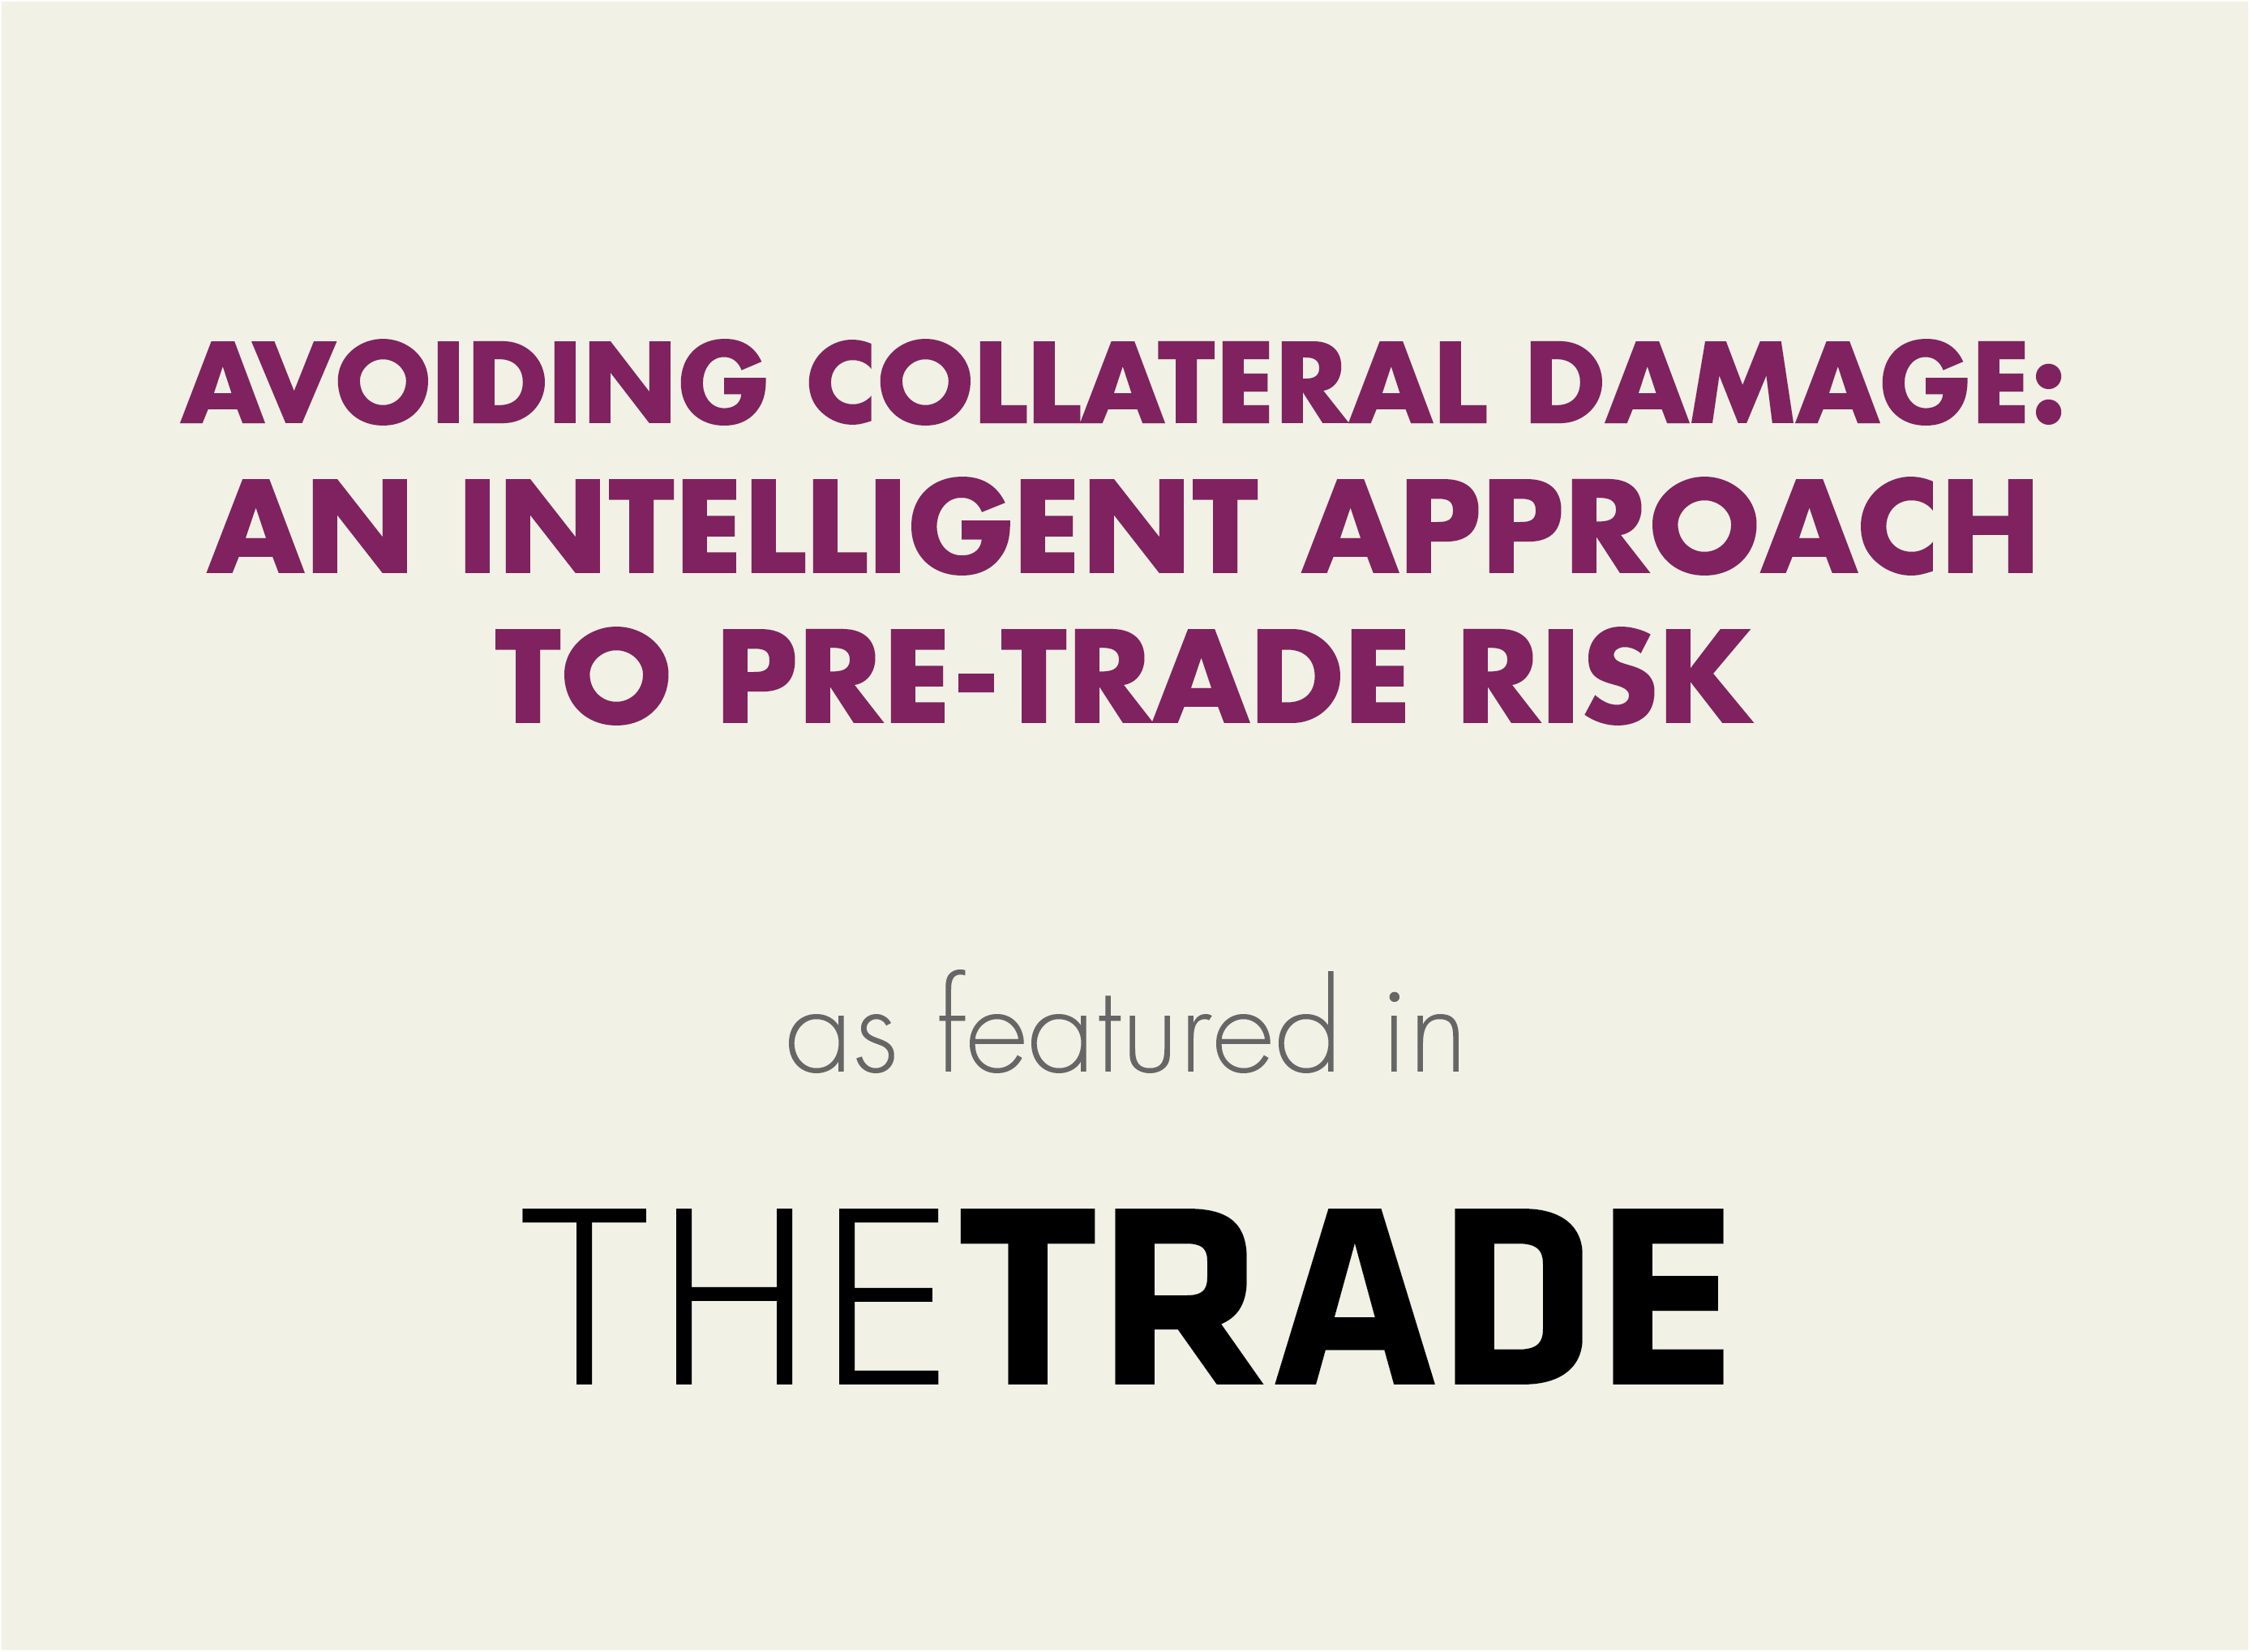 Avoiding collateral damage: an intelligent approach to pre-trade risk